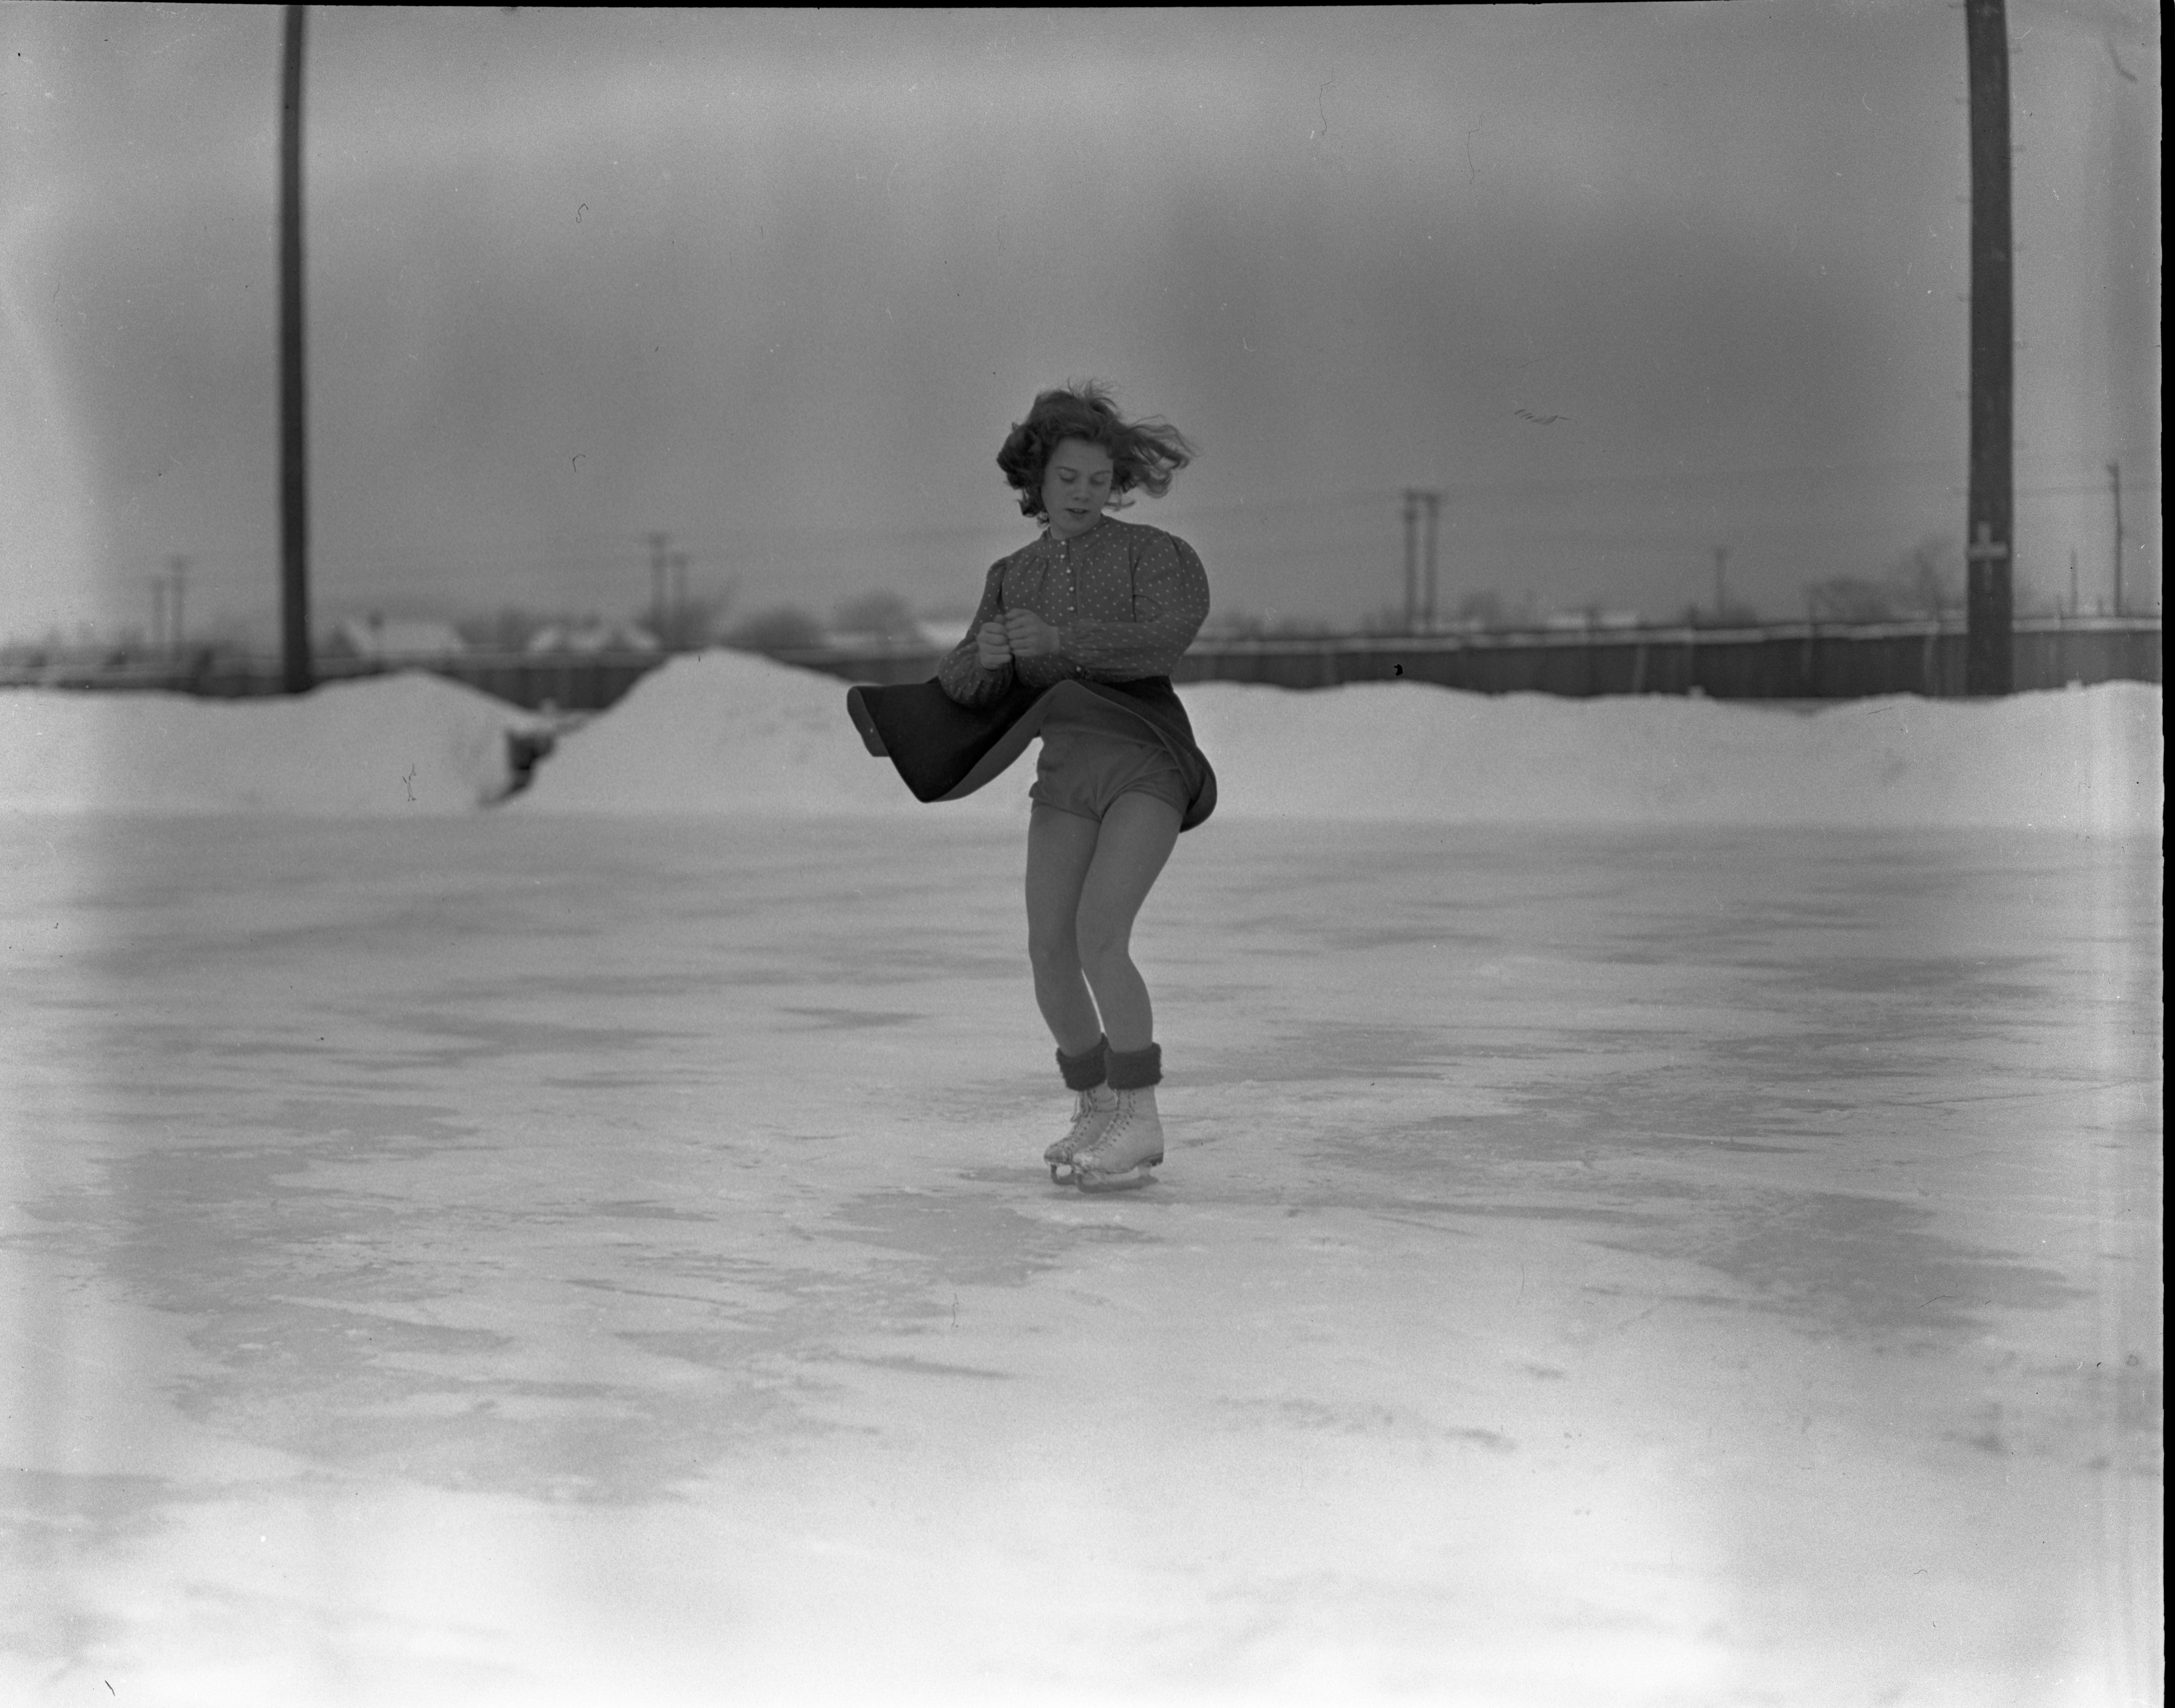 LaVarne Conant Figure Skates On Outdoor Ice Rink In Traverse City, January 1940 image